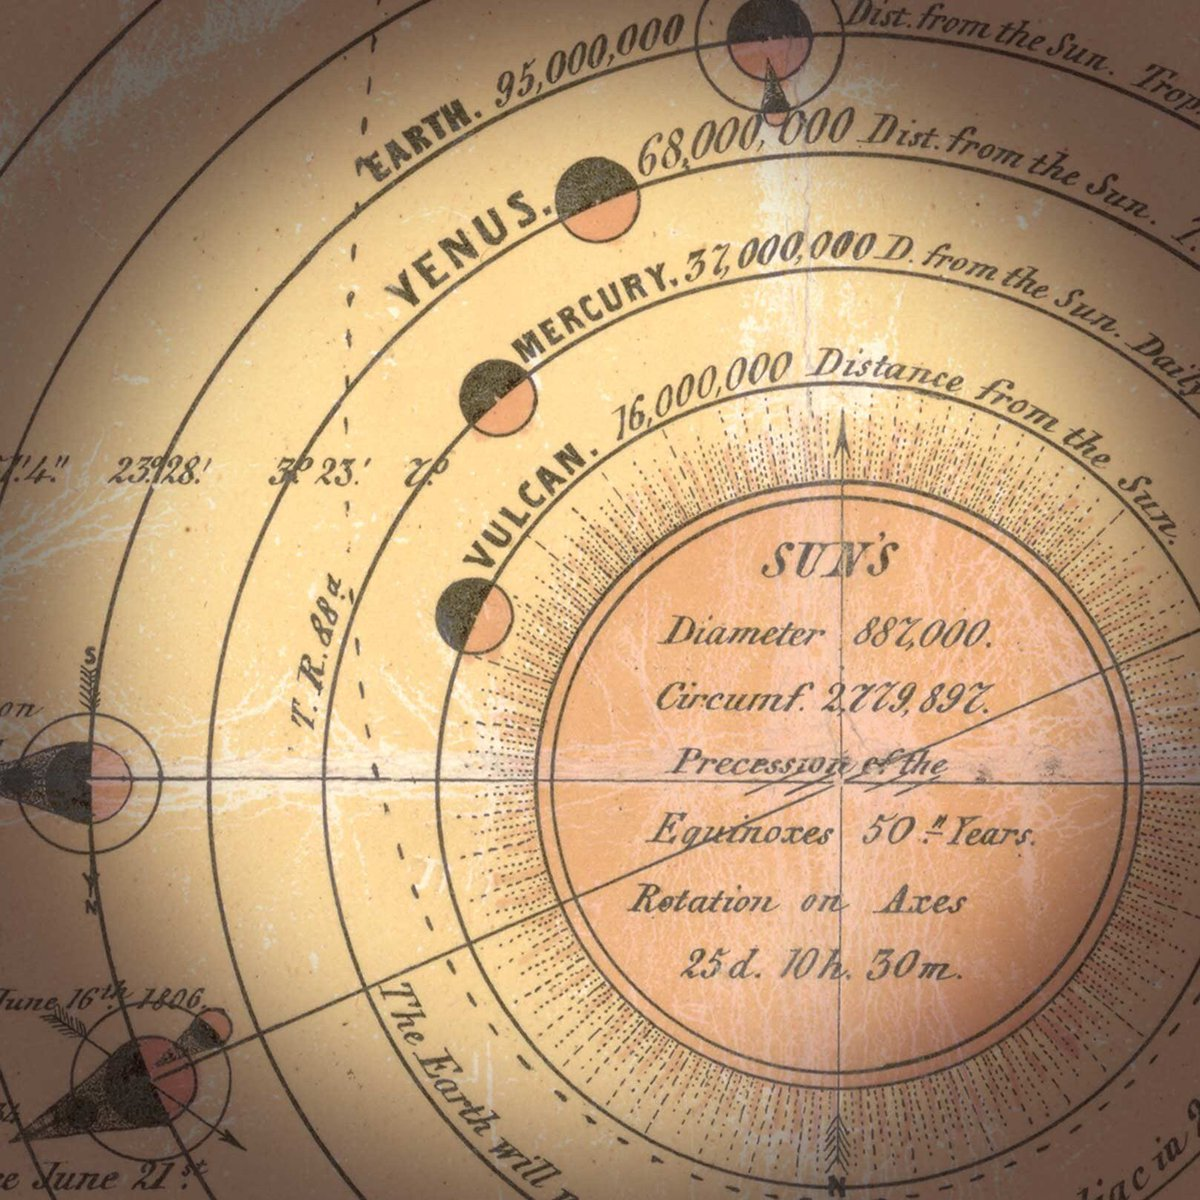 #DidYouKnow that in the 1800s, a hypothetical fire planet named &quot;Vulcan&quot; was thought to exist between Mercury and the Sun. <br>http://pic.twitter.com/TNvirZiyuS